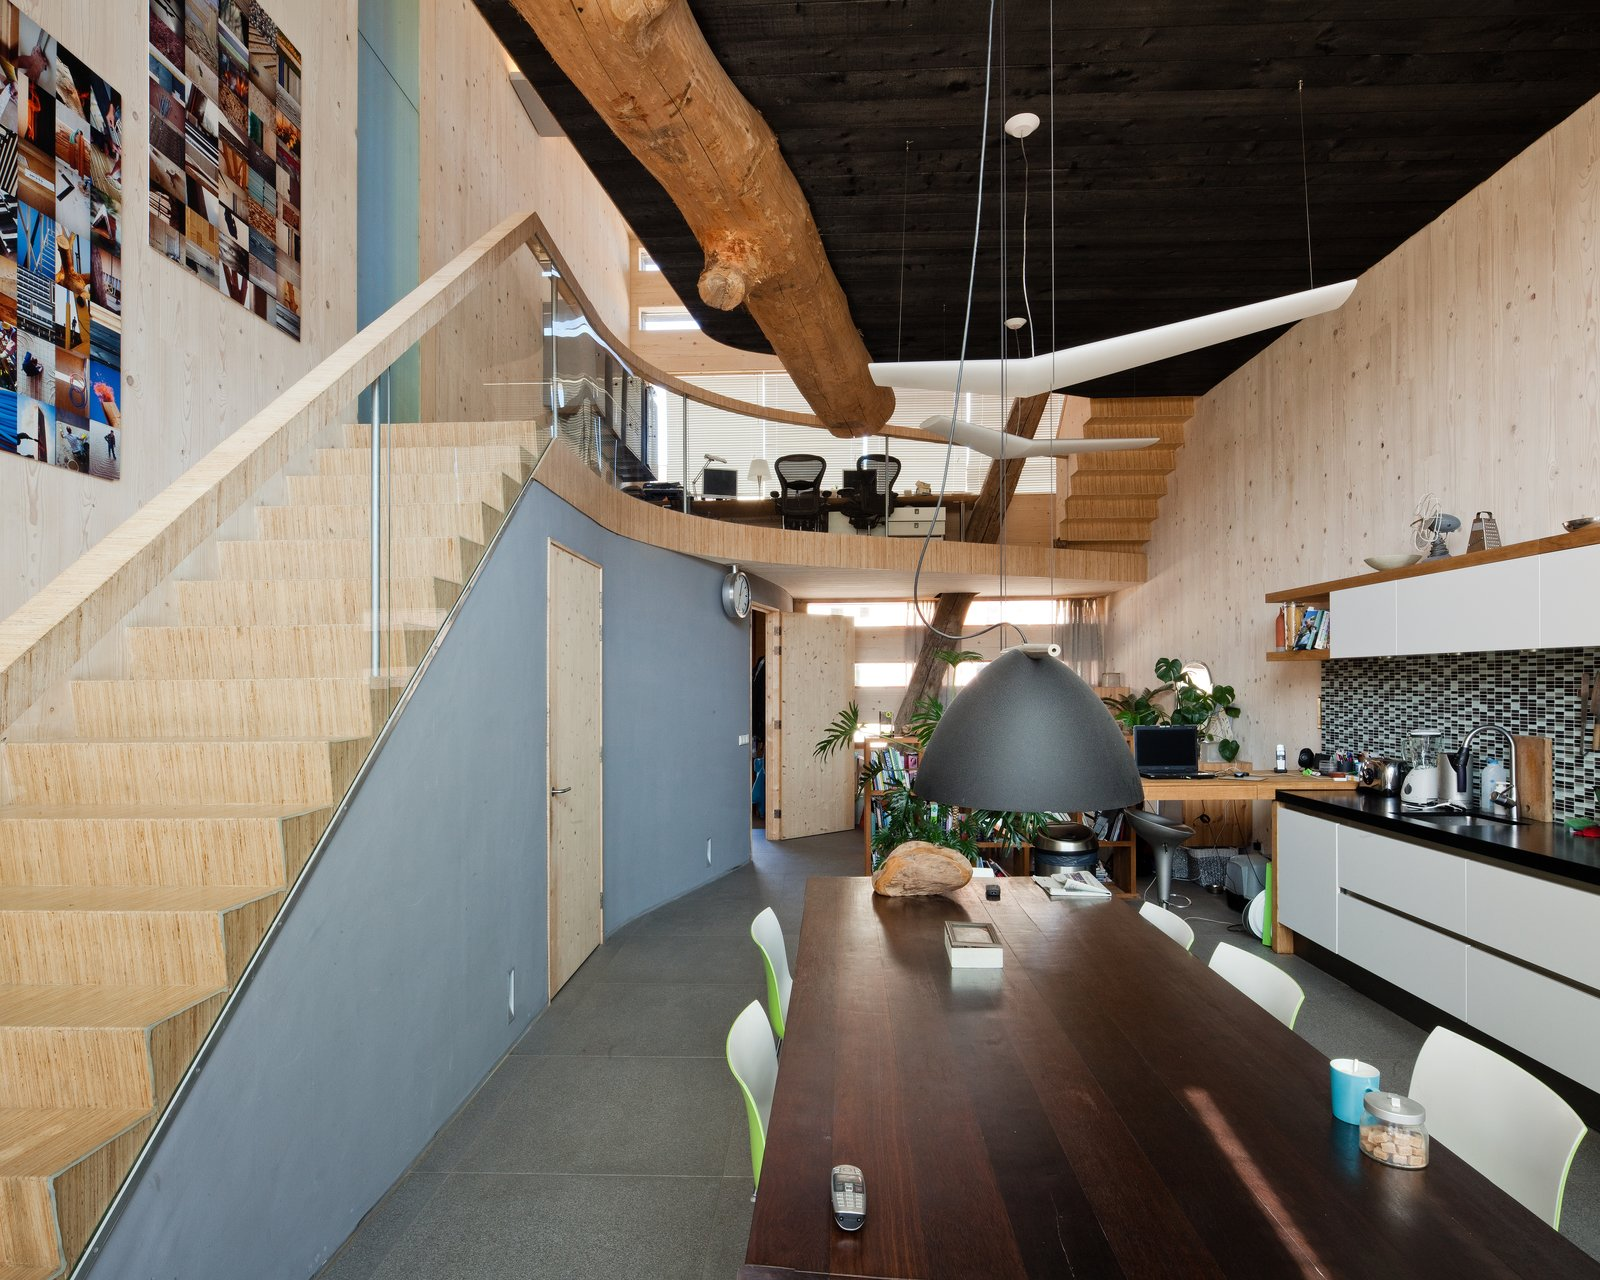 The dining and kitchen area are located on the first floor. The ceramic tile floor is from a local source, which is Cradle to Cradle certified.